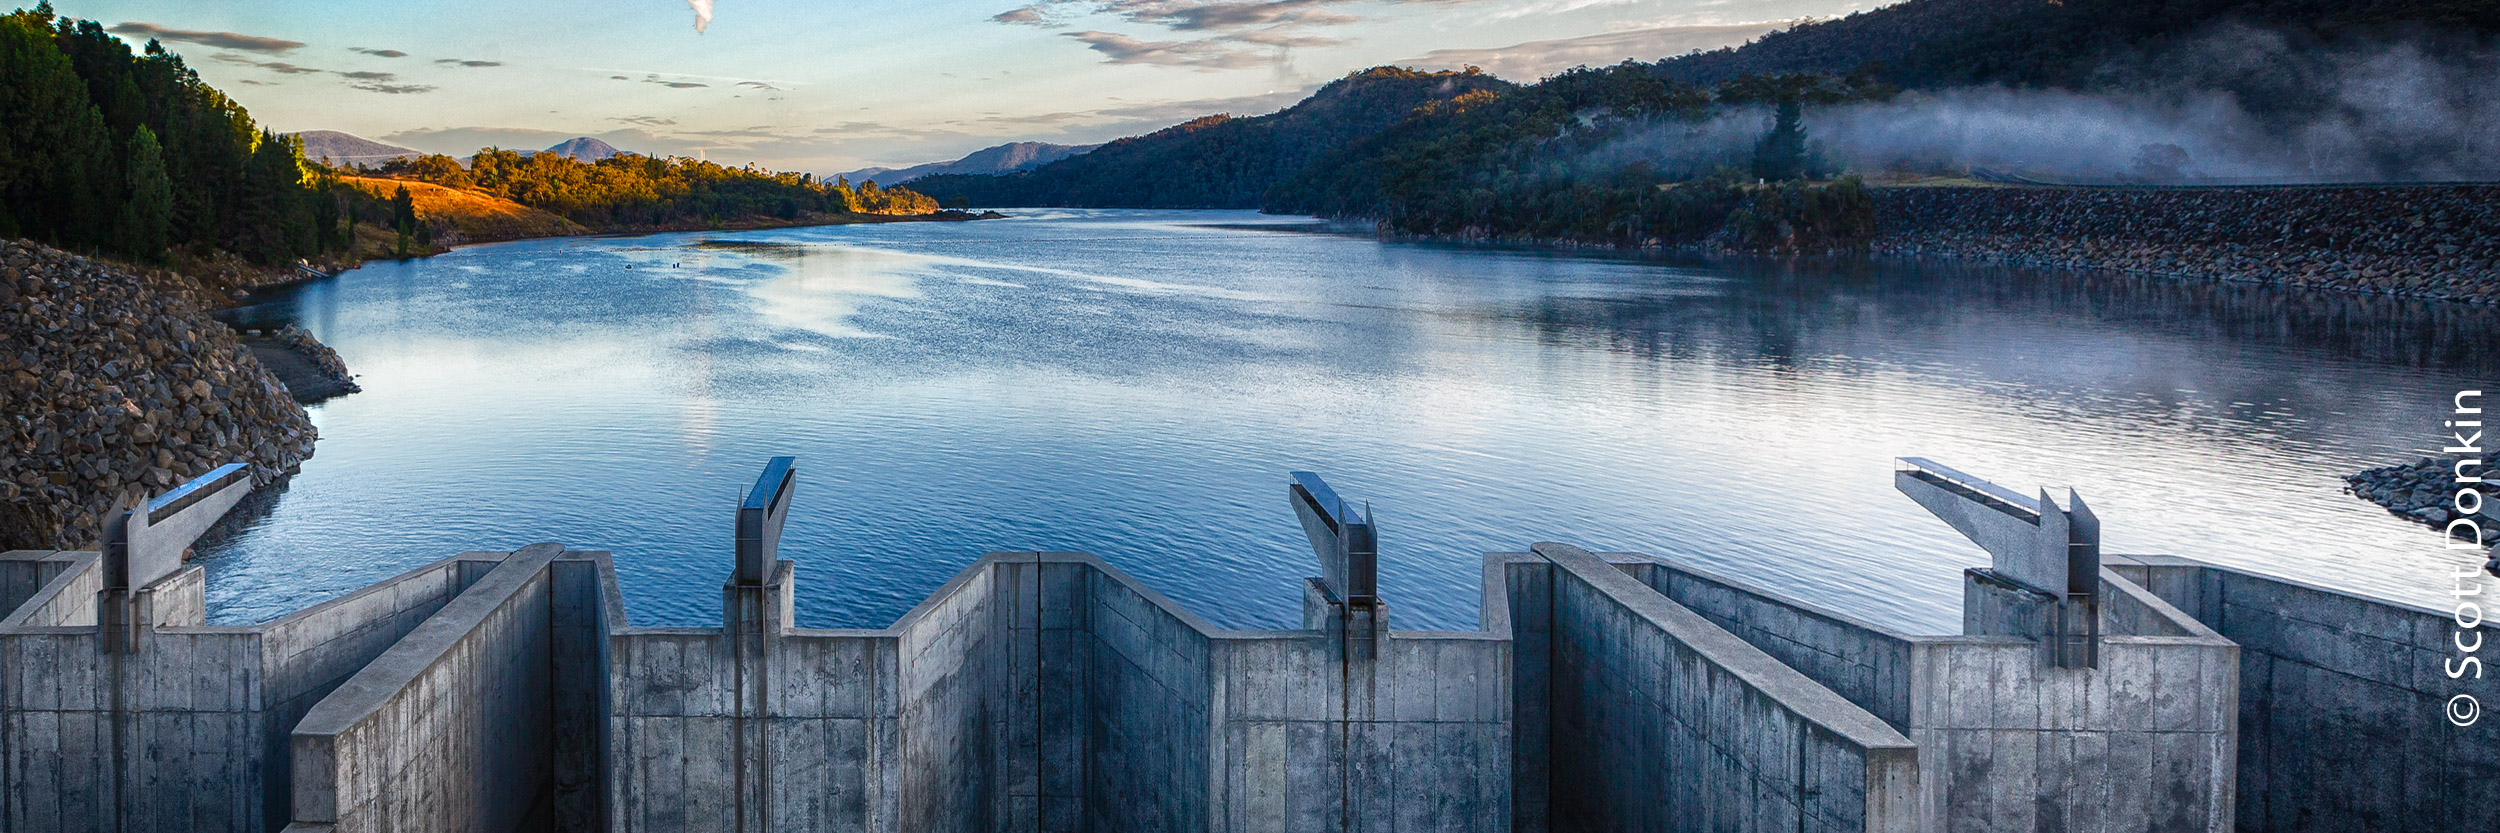 Lake Jindabyne Dam and sluice gates. Jindabyne, New South Wales.